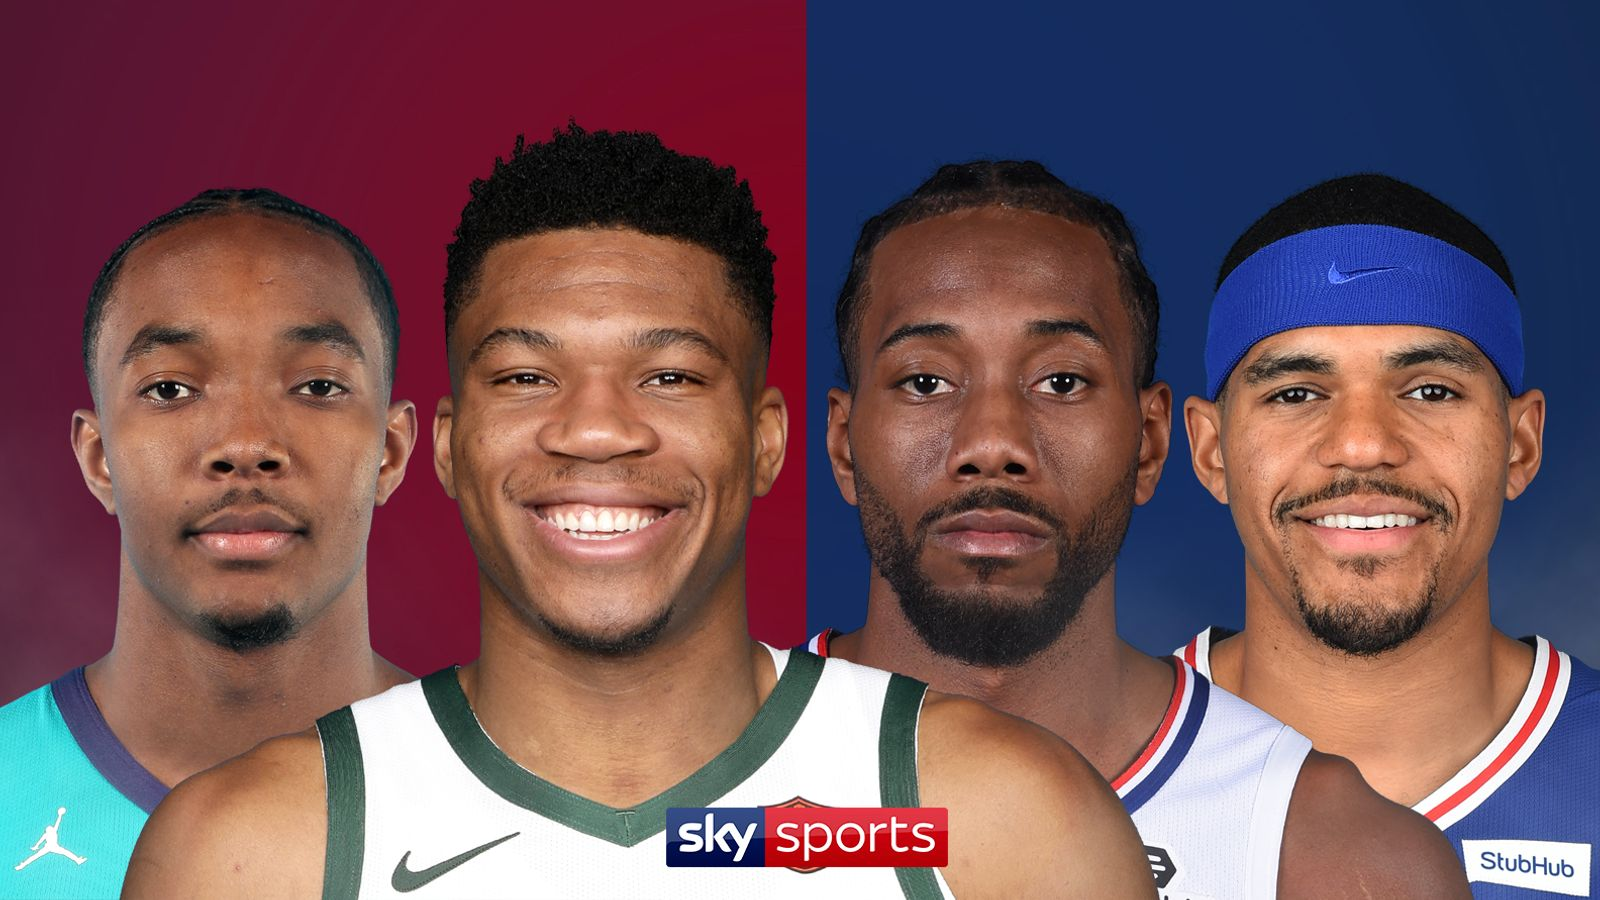 Ovie Soko previews NBA Sunday on Sky Sports: Bucks @ Hornets and 76ers @ Clippers